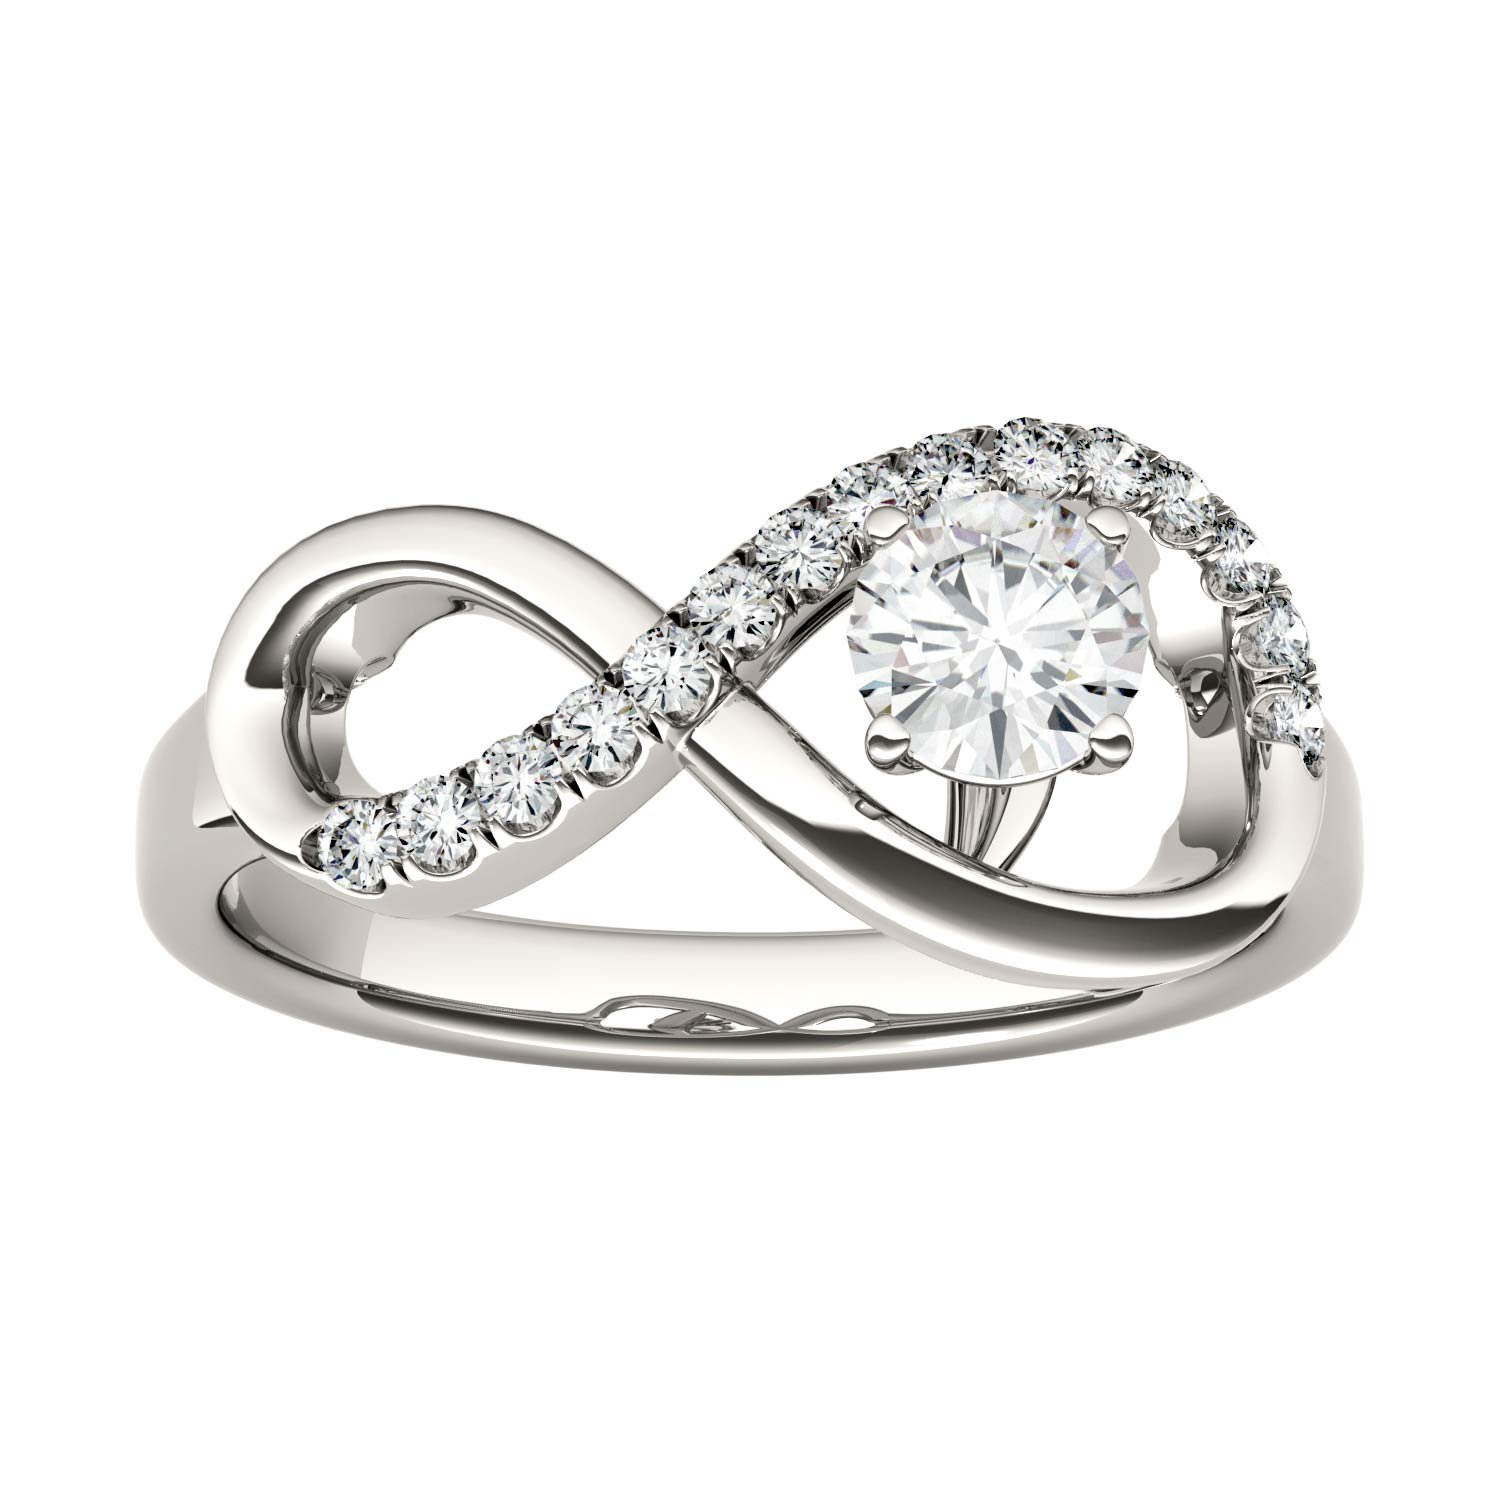 Forever Classic Infinity 4.5mm Round Moissanite Ring-size 8, 0.50cttw DEW By Charles & Colvard